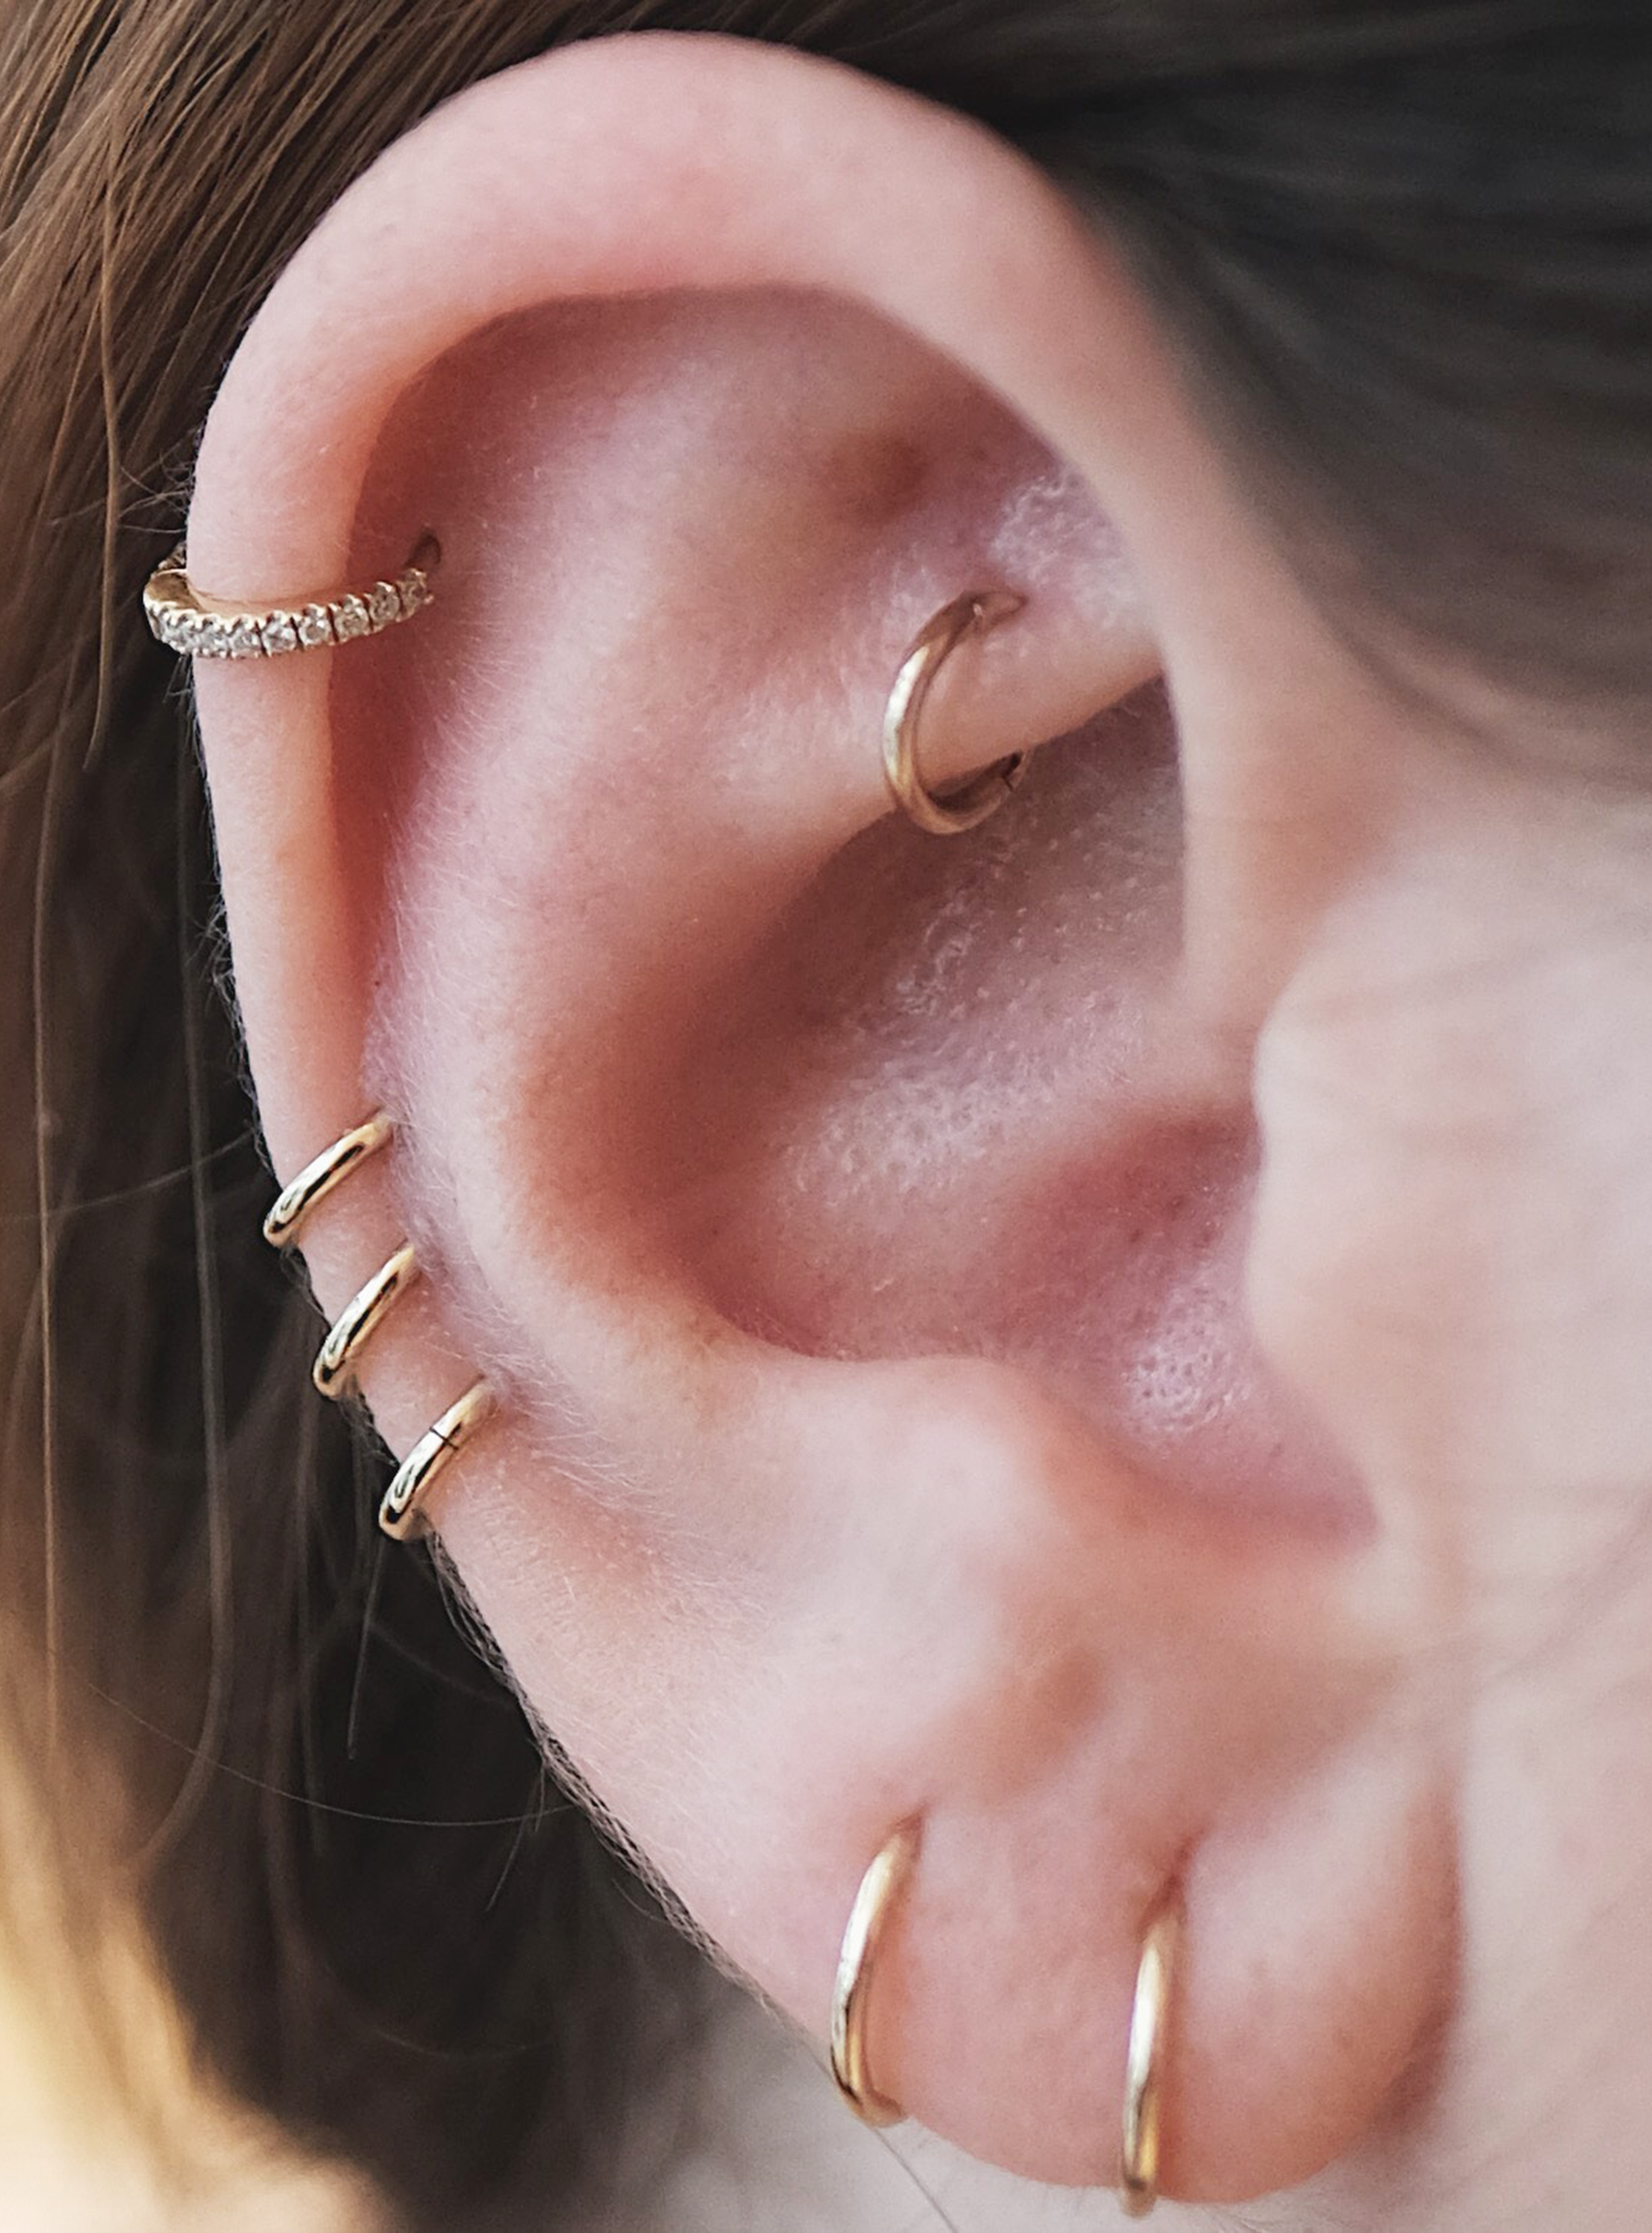 The coolest piercings new york girls are getting right now refinery anti tragus daith rook conch constellation also cool rh pinterest